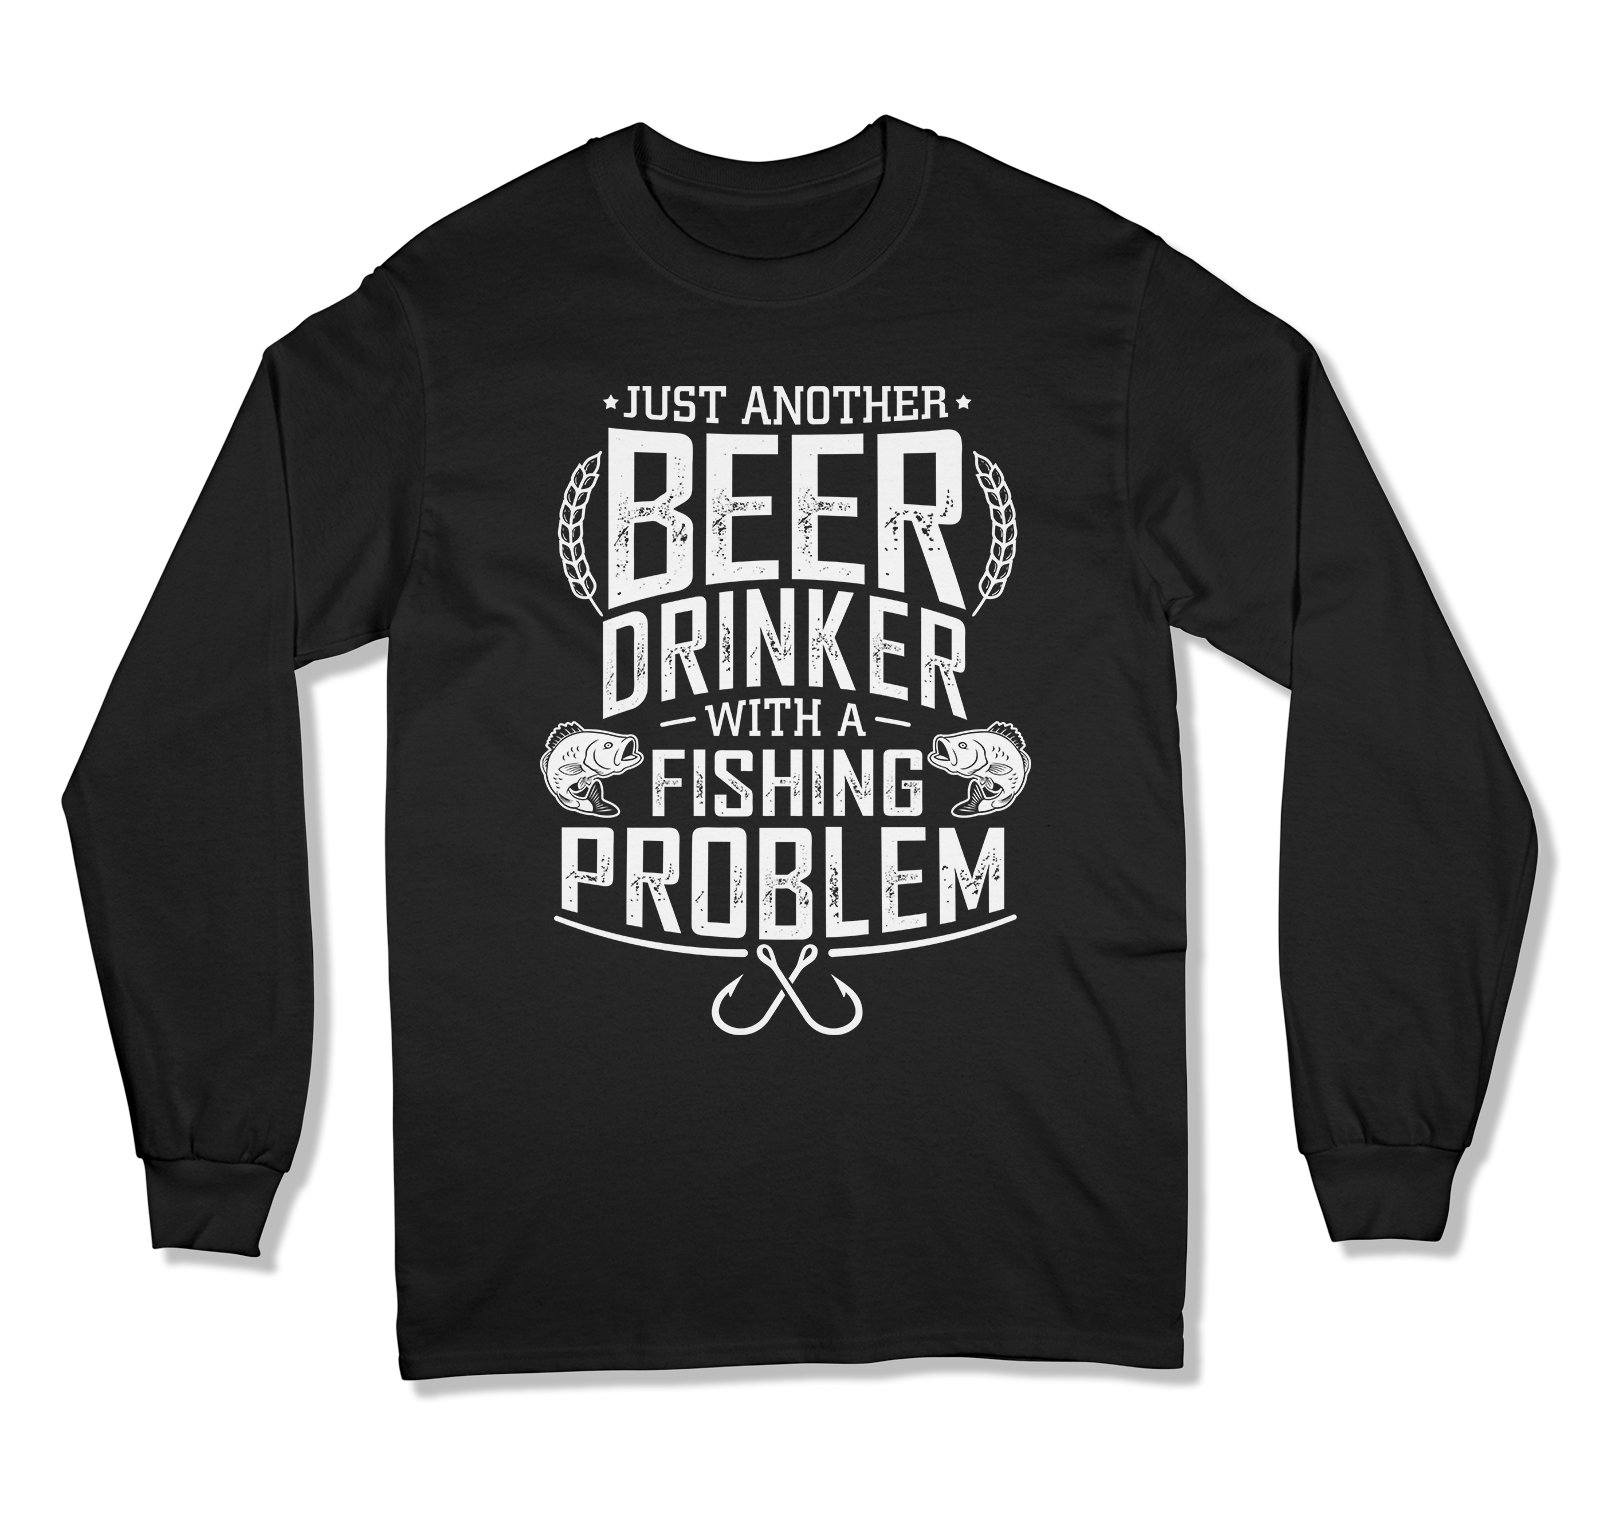 Just Another Beer Drinker With A Fishing Problem T-Shirt - MD-668